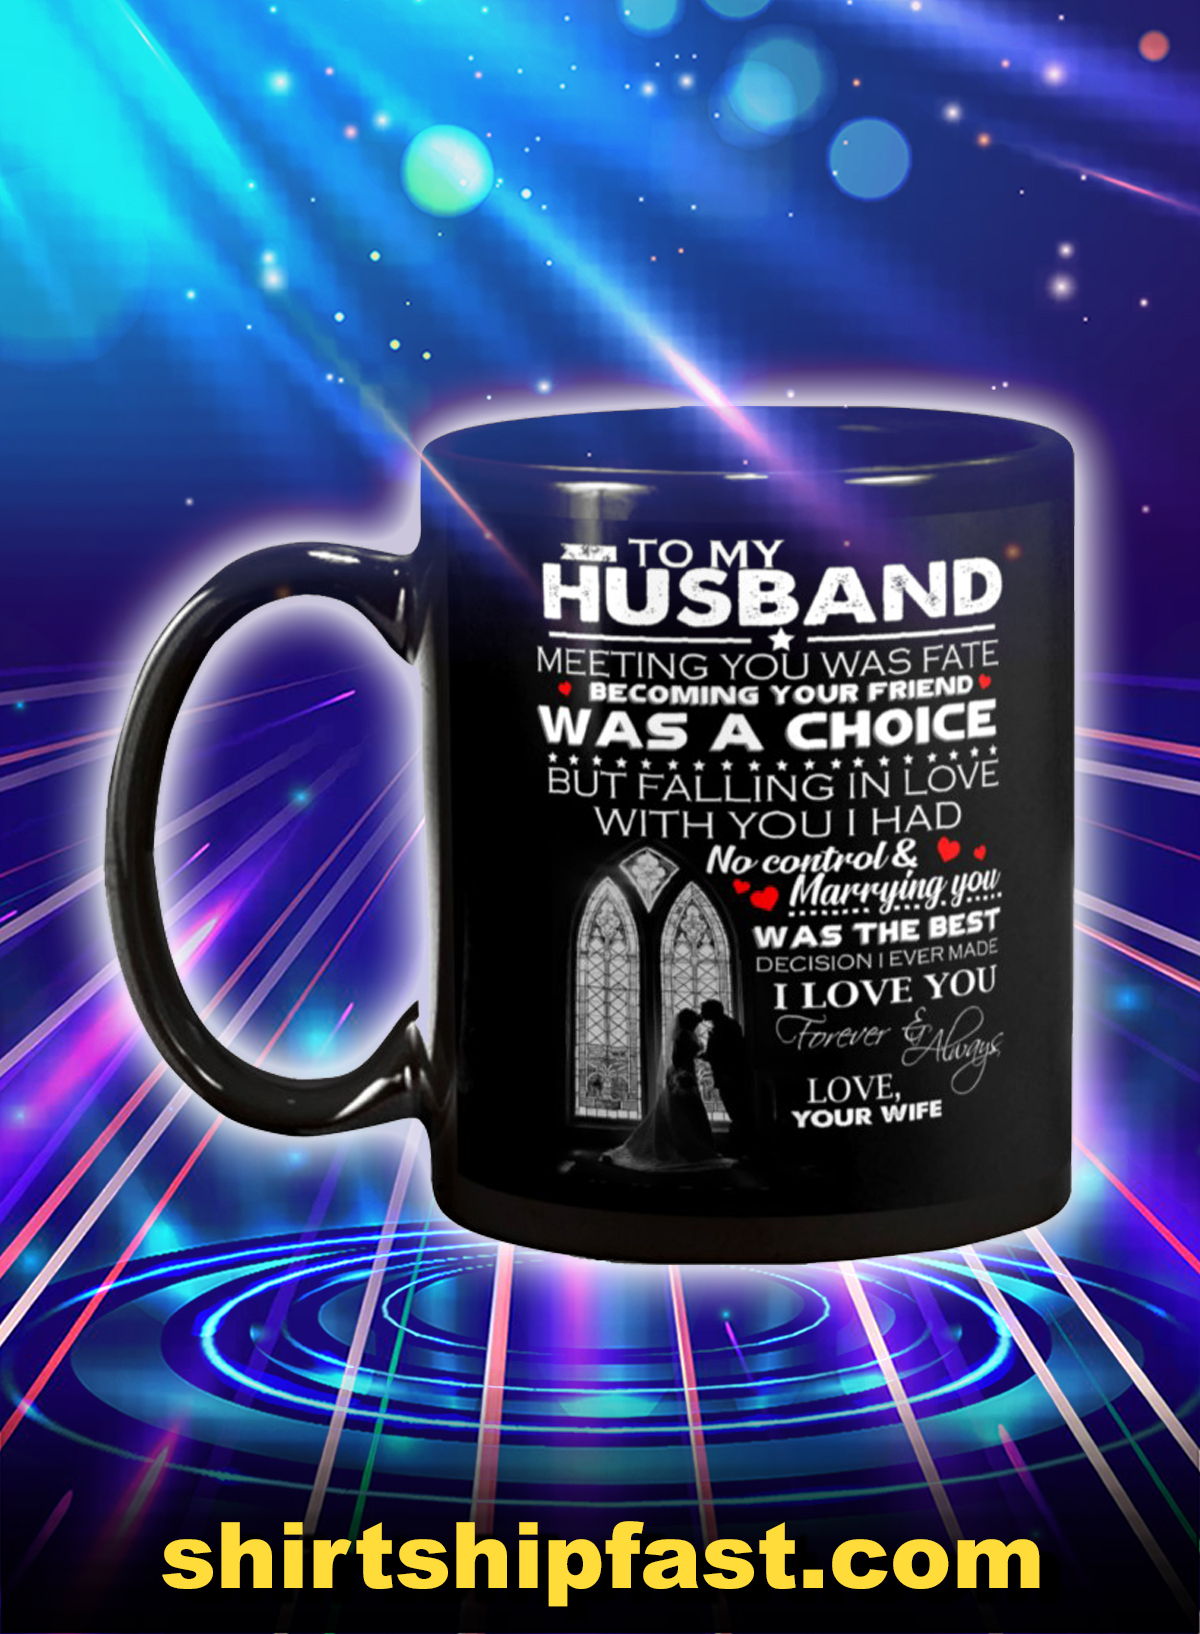 To my husband meeting you was fate love your wife mug - Picture 1